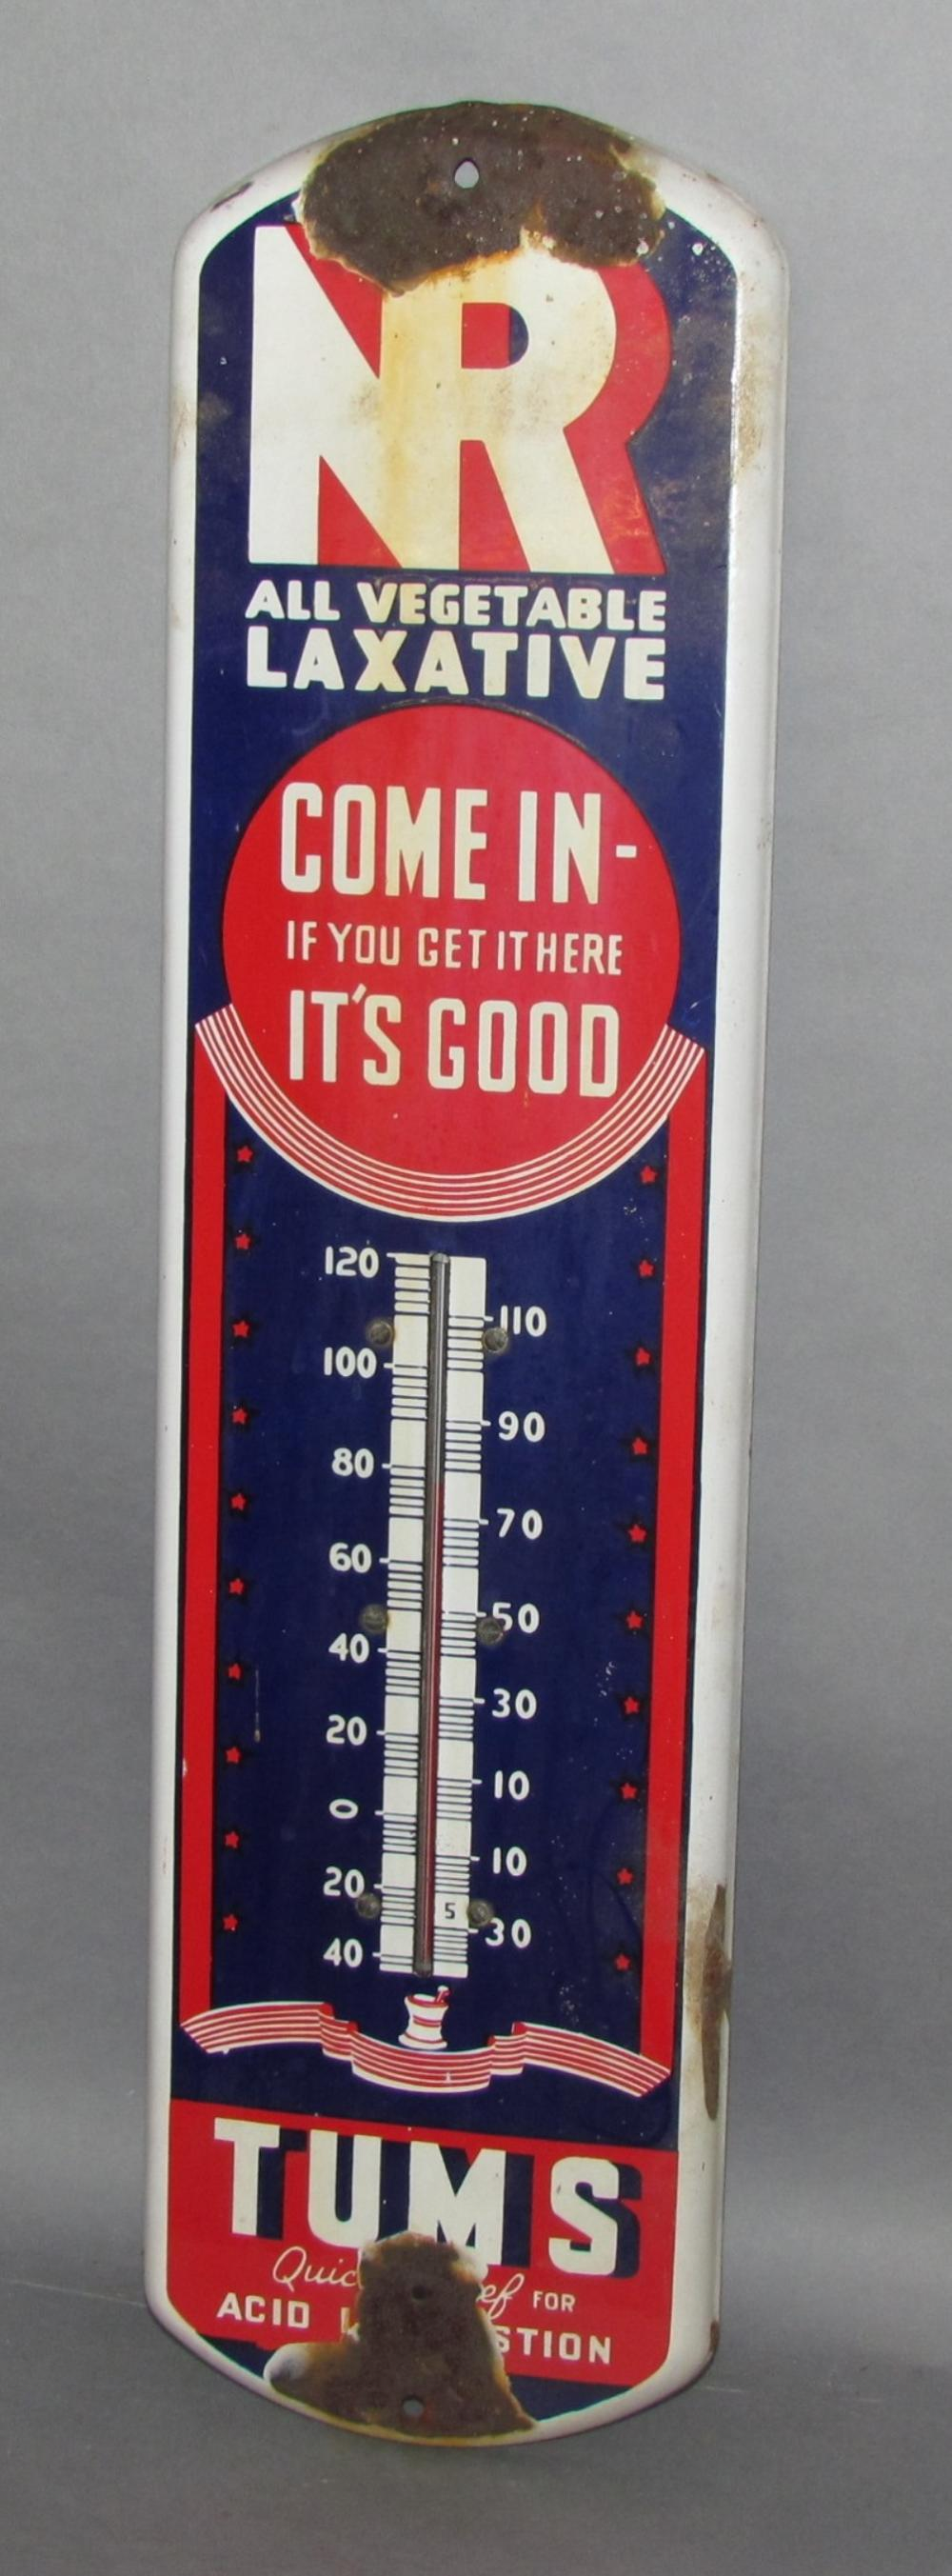 Tums & NR Laxative porcelain thermometer